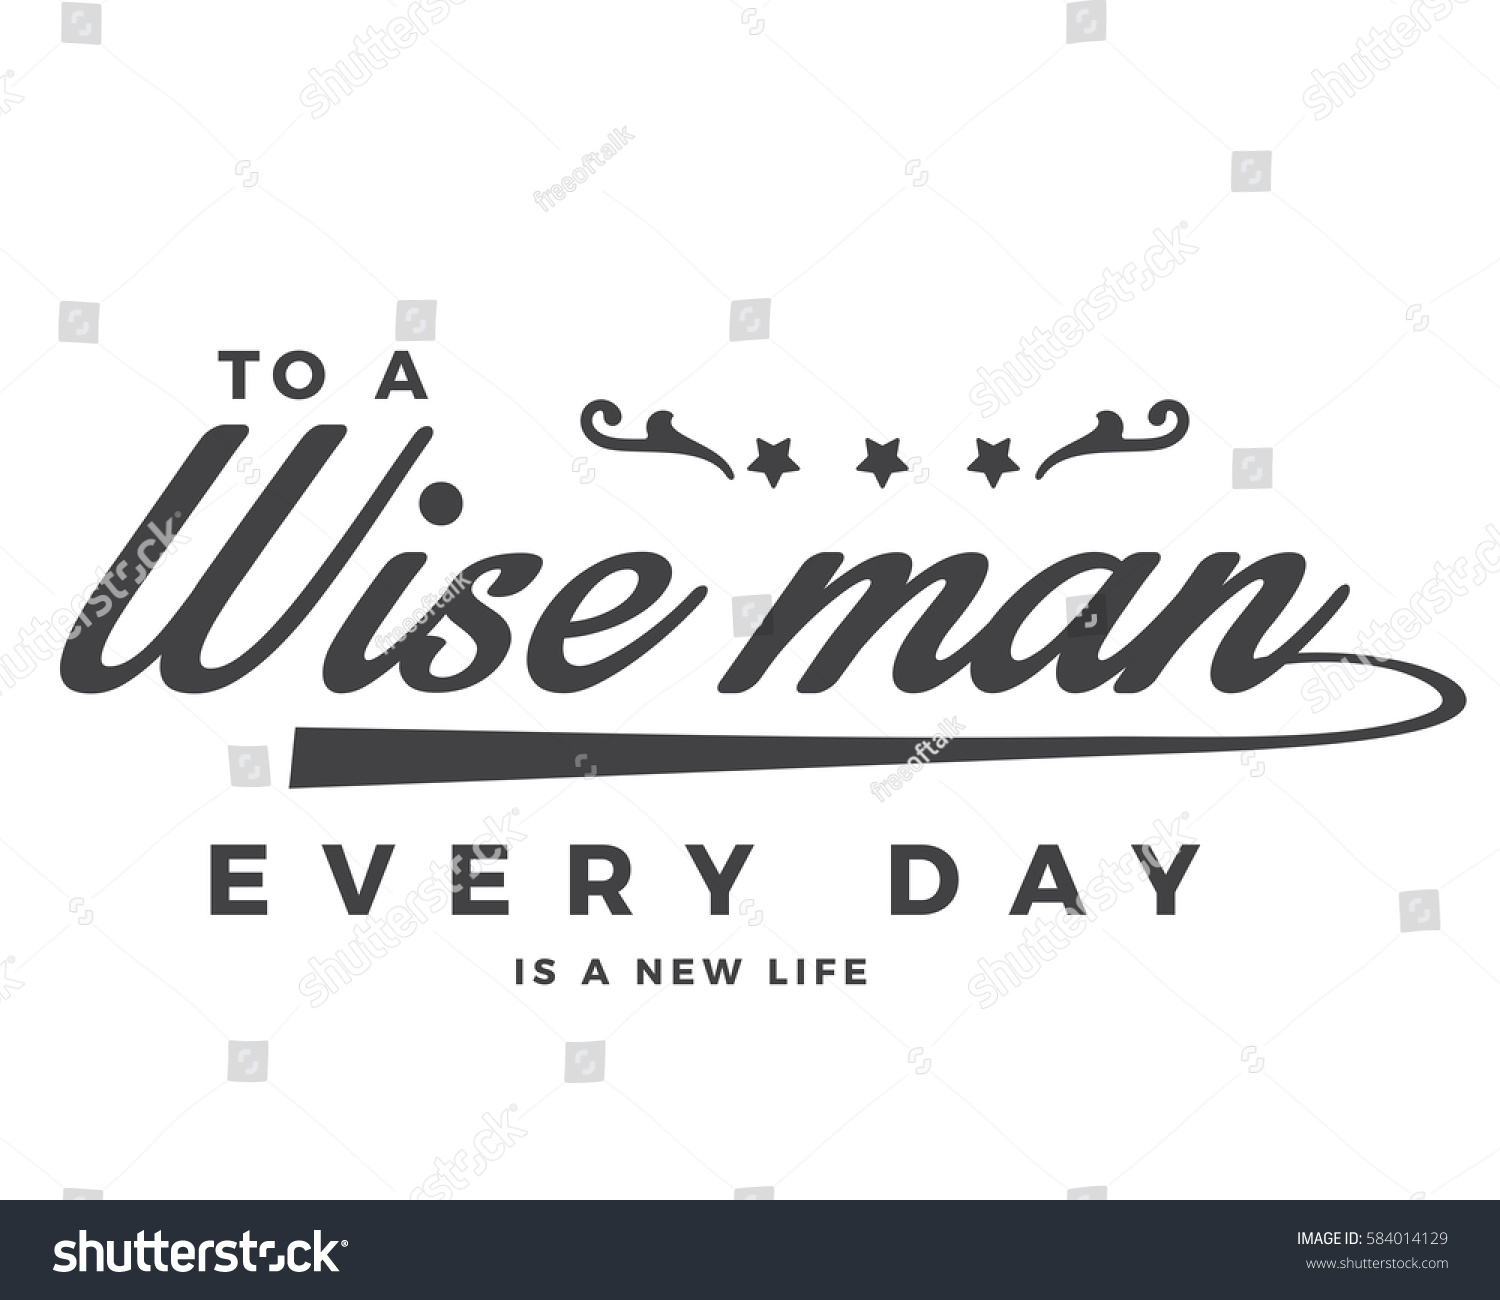 New Life Quote Wise Man Every Day New Life Stock Vector 584014129  Shutterstock